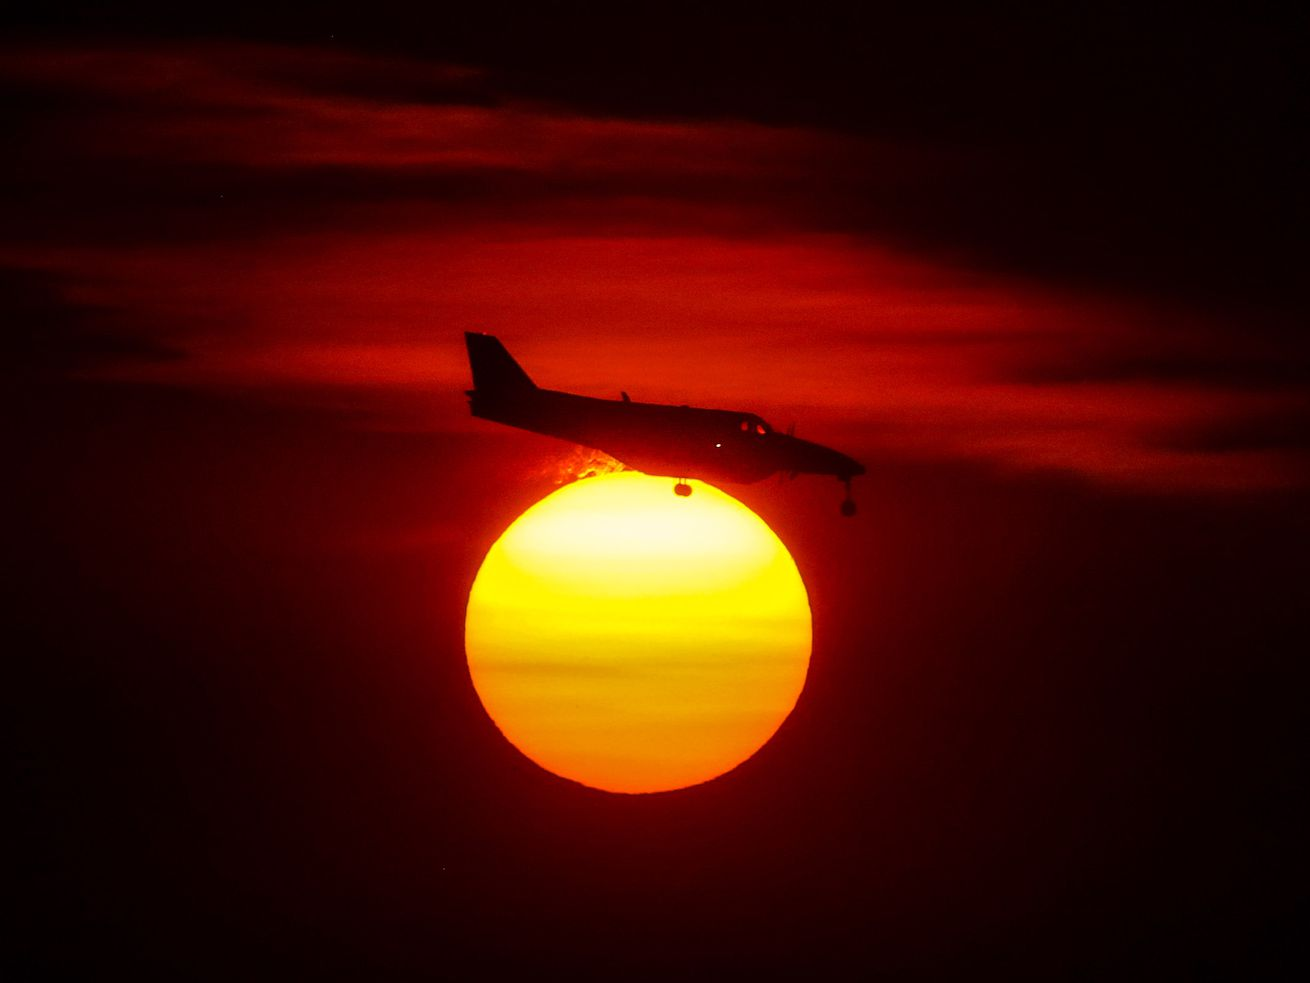 A plane passes in front of the glowing sun as it makes its final approach at the Salt Lake City International Airport on Monday, Oct. 5, 2020. Smoke from wildfires in California have intensified the colors of the sunsets in Utah.